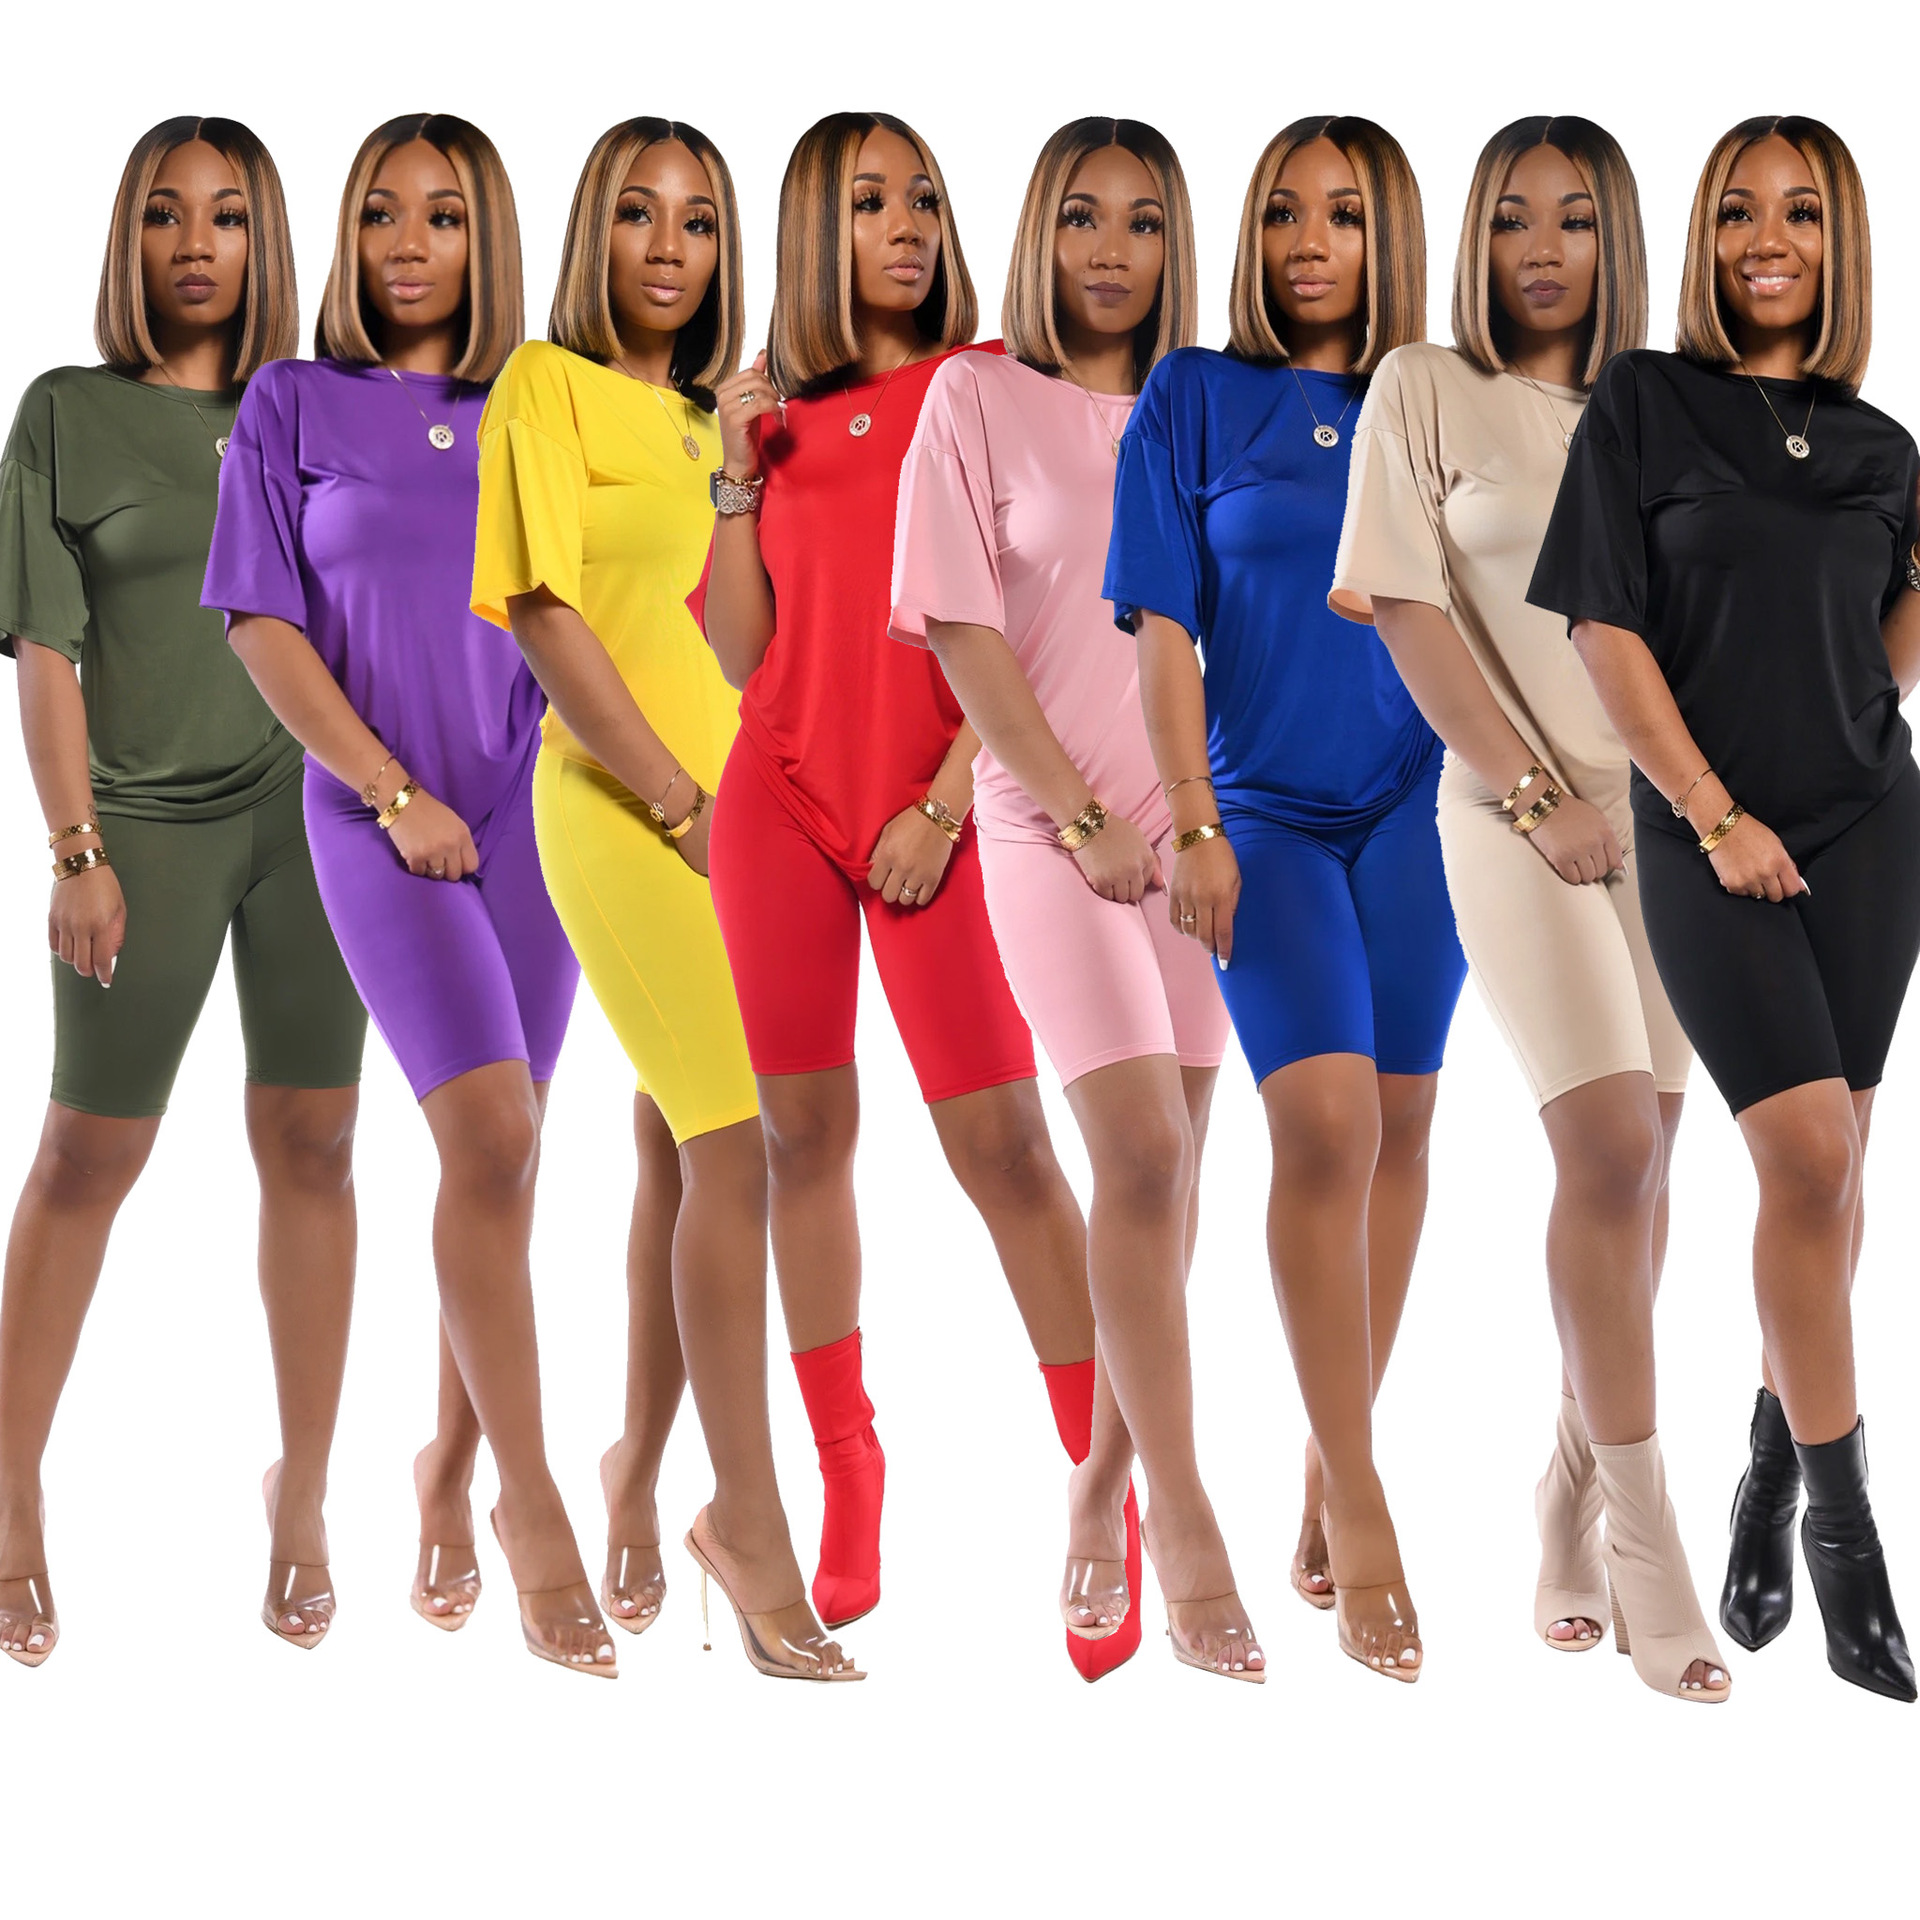 2020 Women Sets Summer Tracksuits Short Sleeve Top+Shorts Suit Two Piece Set Sportswear Night Club Party Slim Outfits